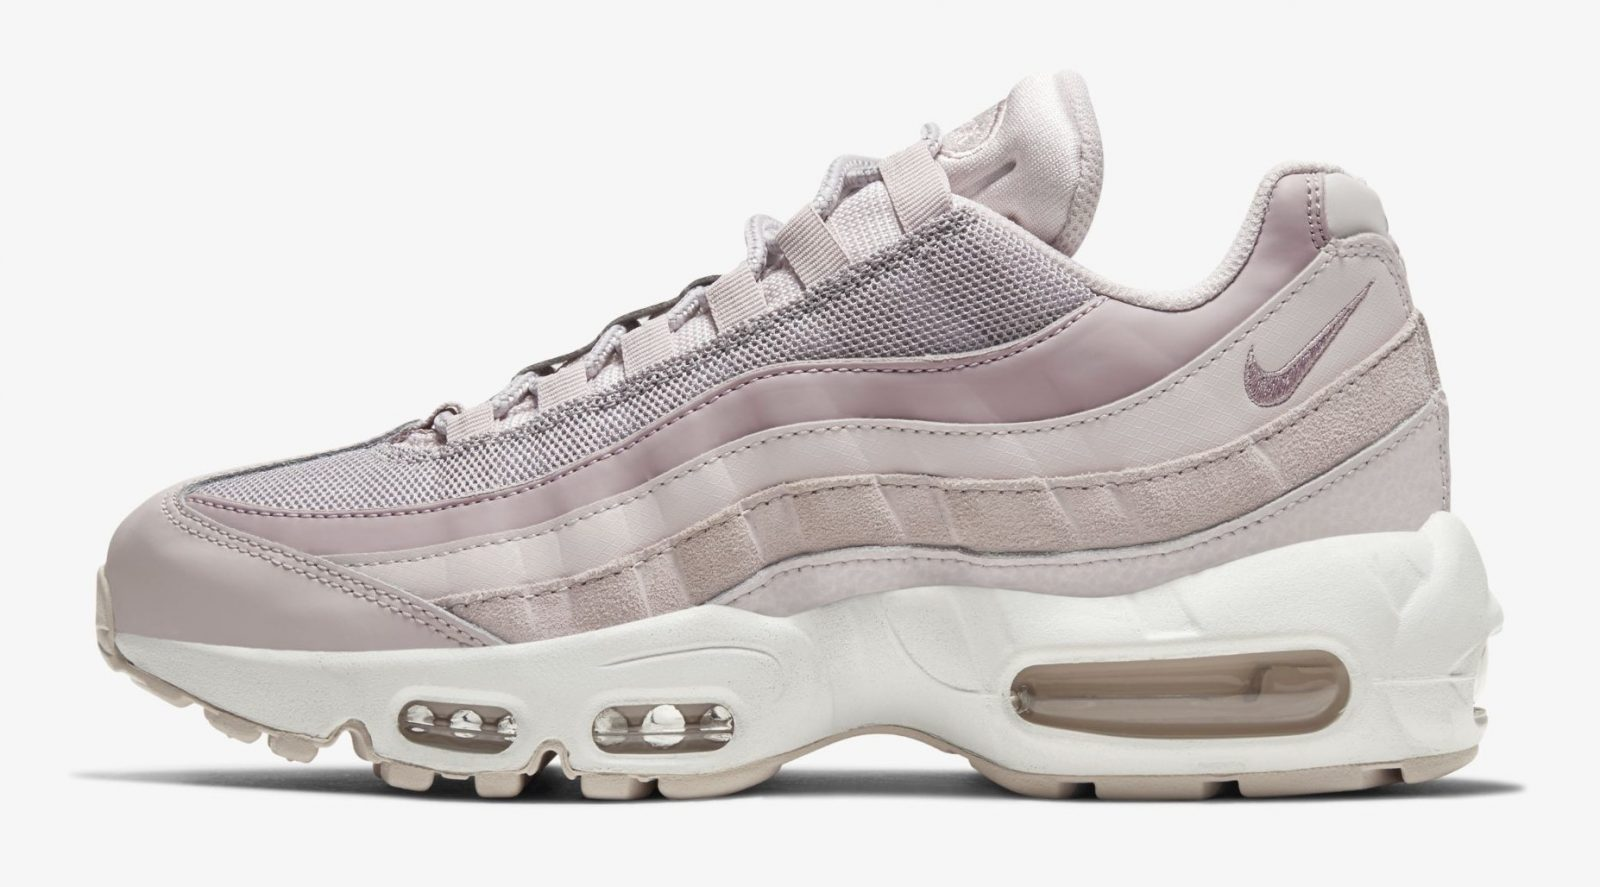 This Nike Air Max 95 Is Unmissable In